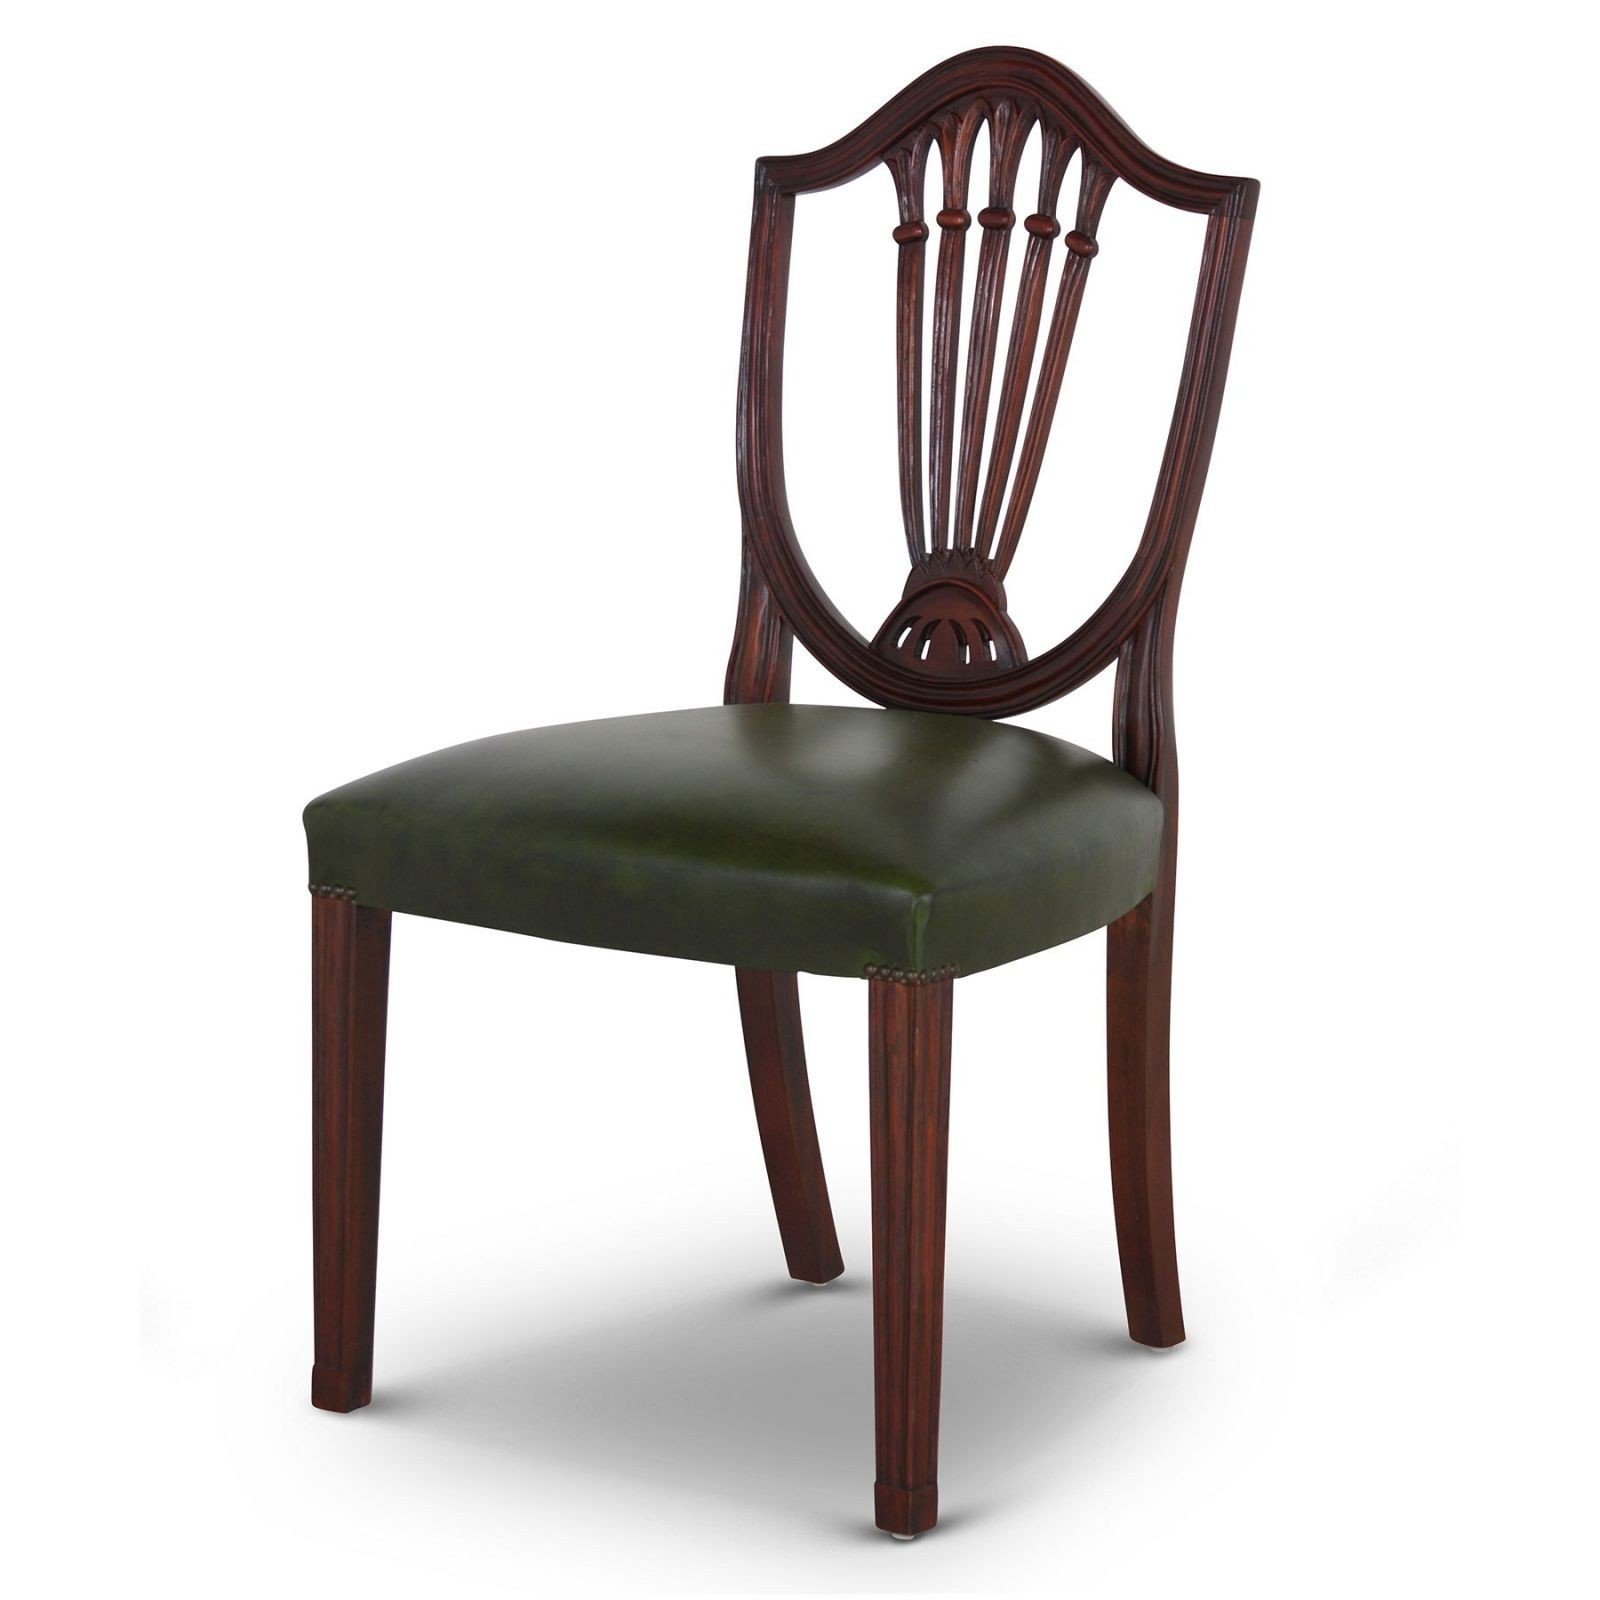 Hepplewhite style mahogany dining chair with green leather seat - set of 8